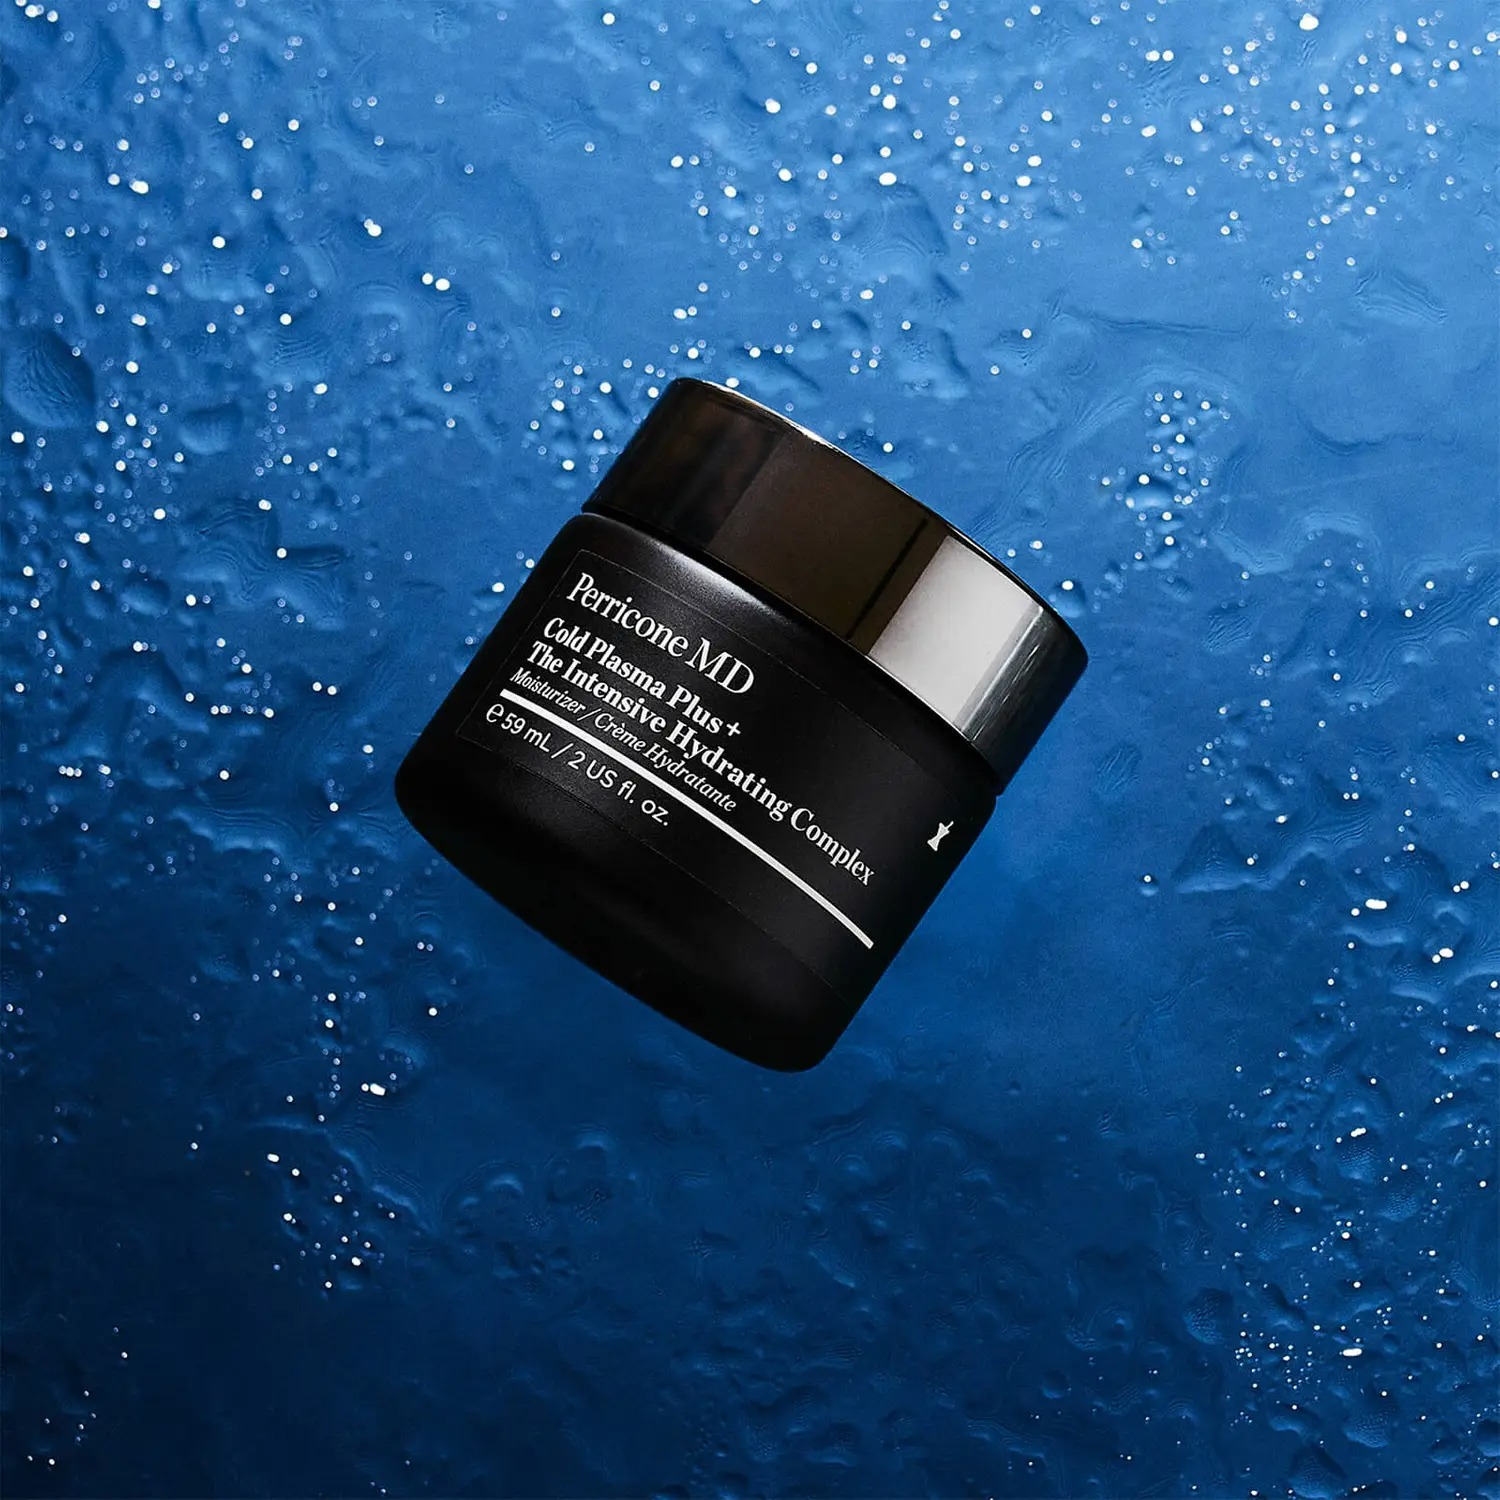 Perricone MD Cold Plasma Plus+ The Intensive Hydrating Complex, best facial moisturizers